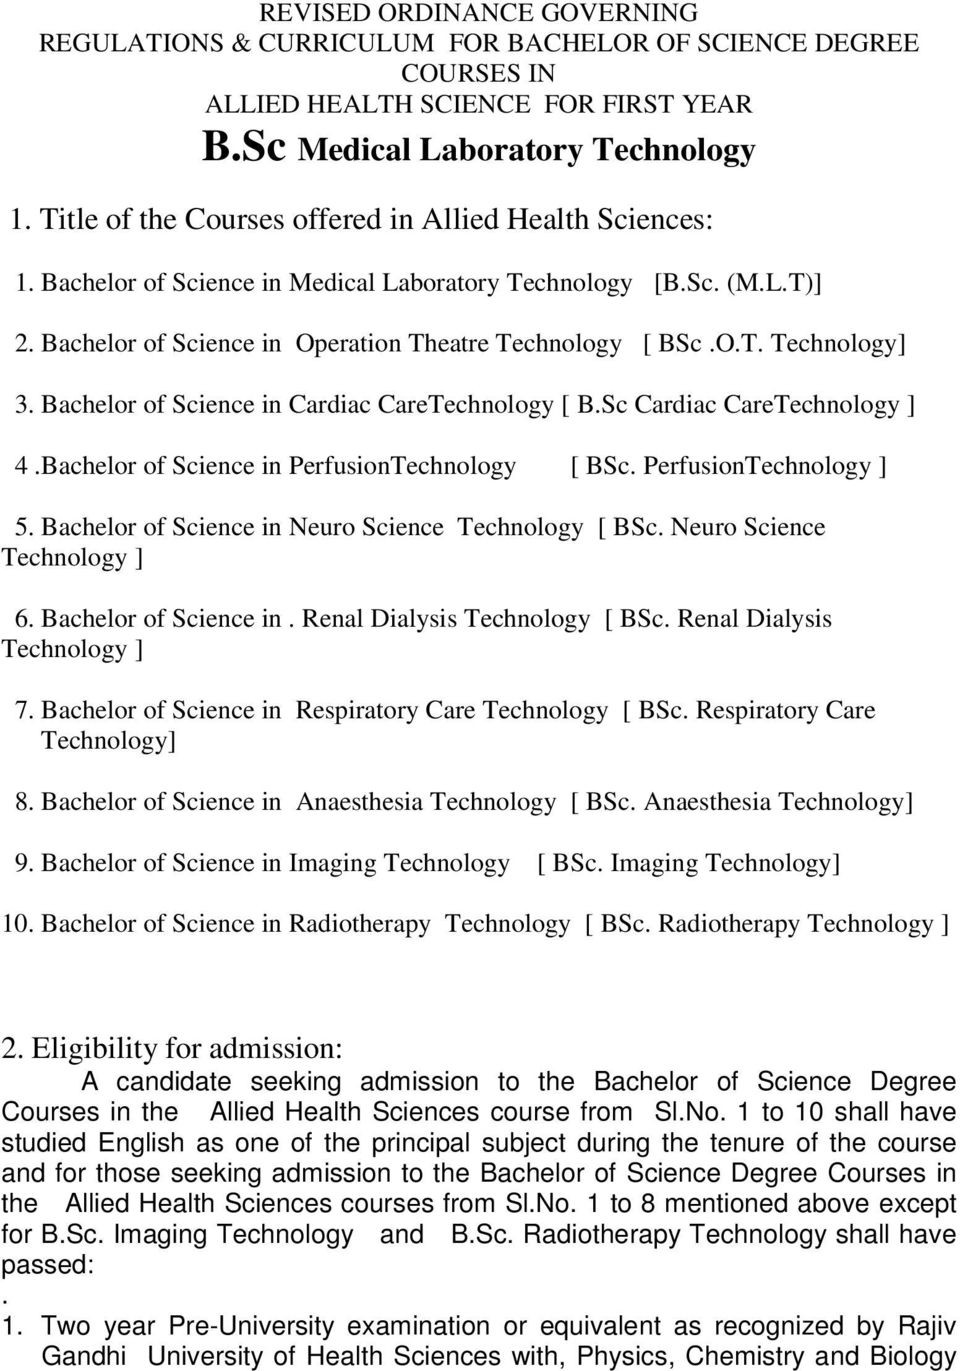 1  Title of the Courses offered in Allied Health Sciences: - PDF